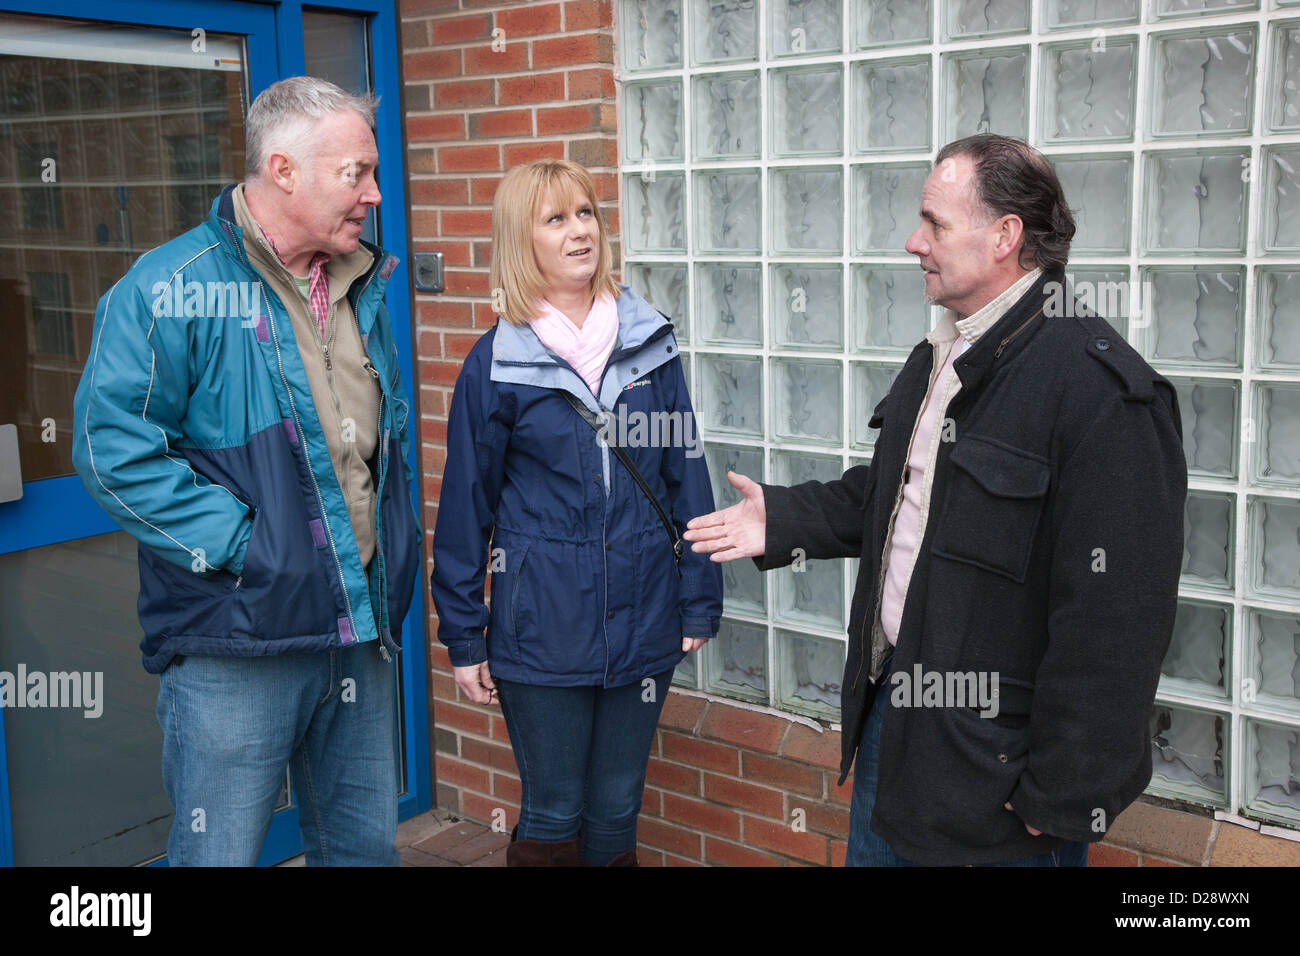 Tenants and housing officer at entrance to flats. - Stock Image